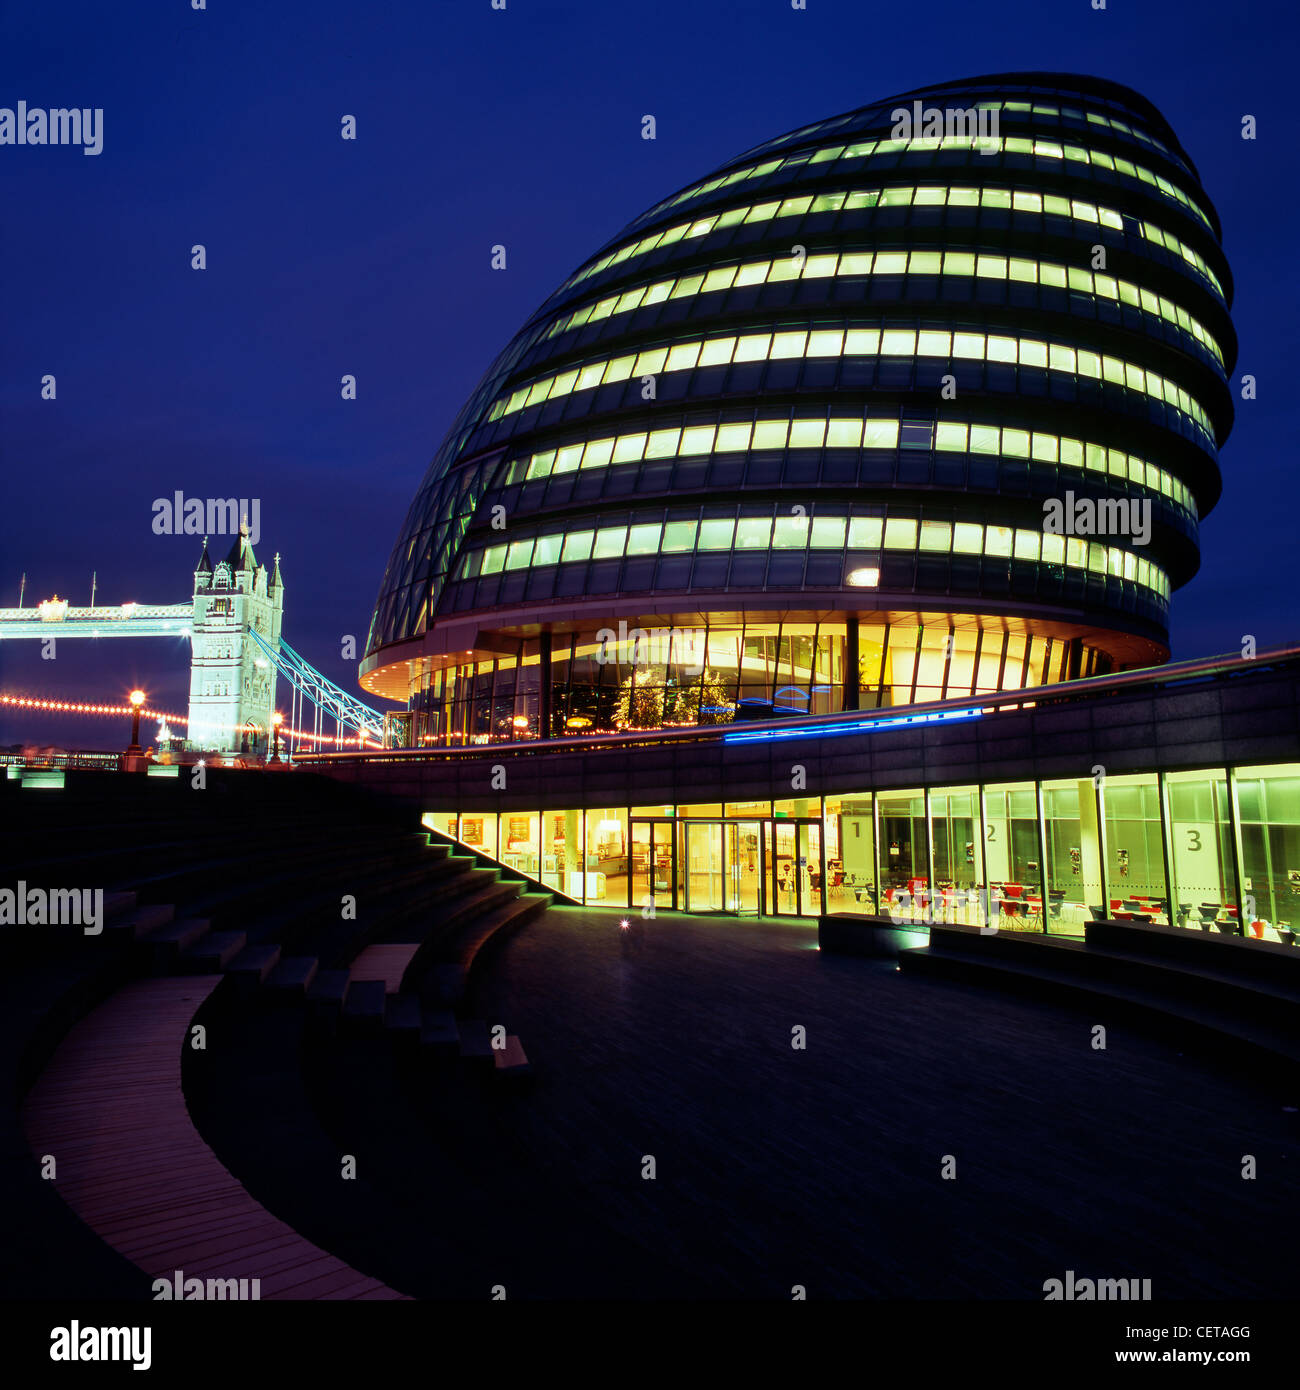 City Hall at night. The headquarters of the Greater London Authority, the building was designed by Norman Foster - Stock Image